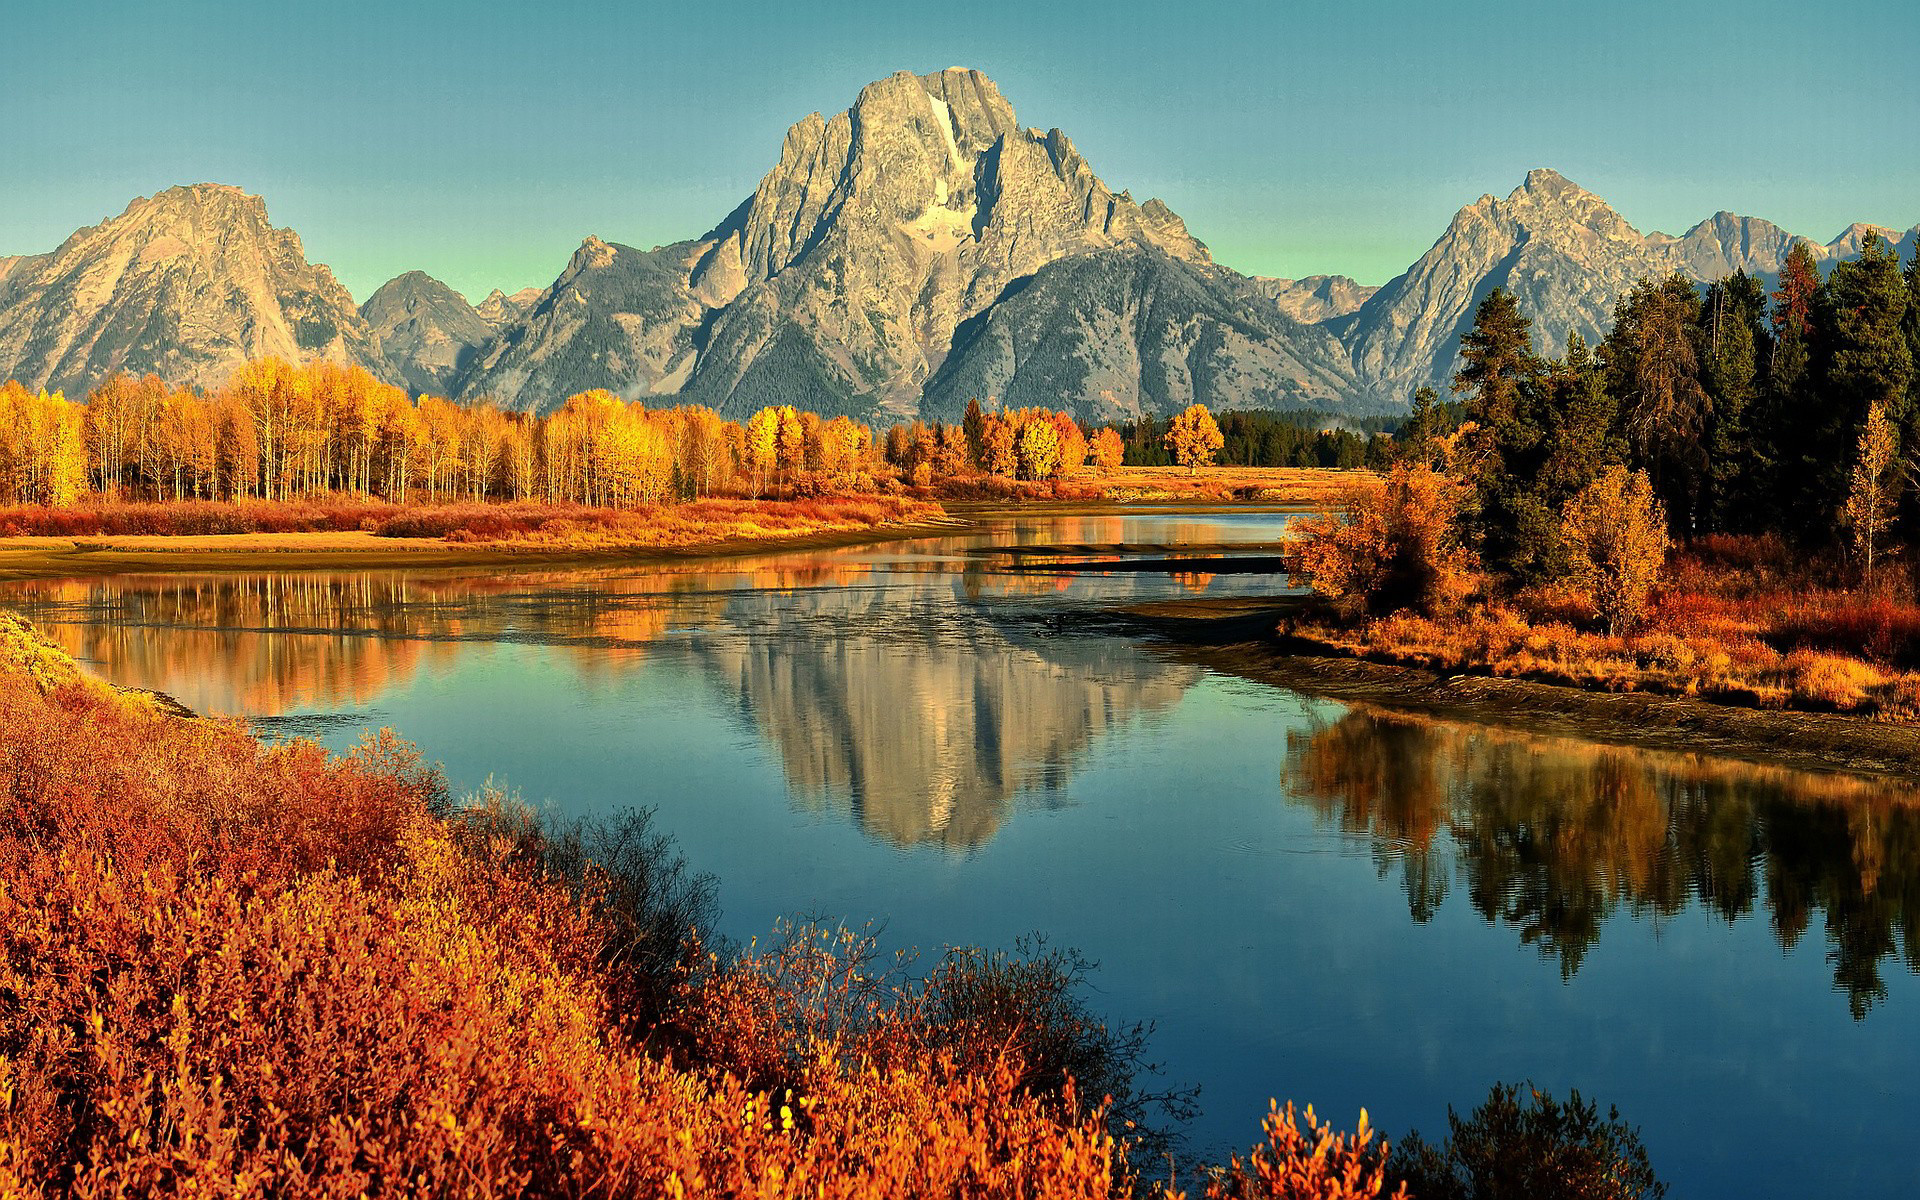 Explore Mountain Wallpaper, Desktop Wallpapers, and more! Fall Wallpapers  Images